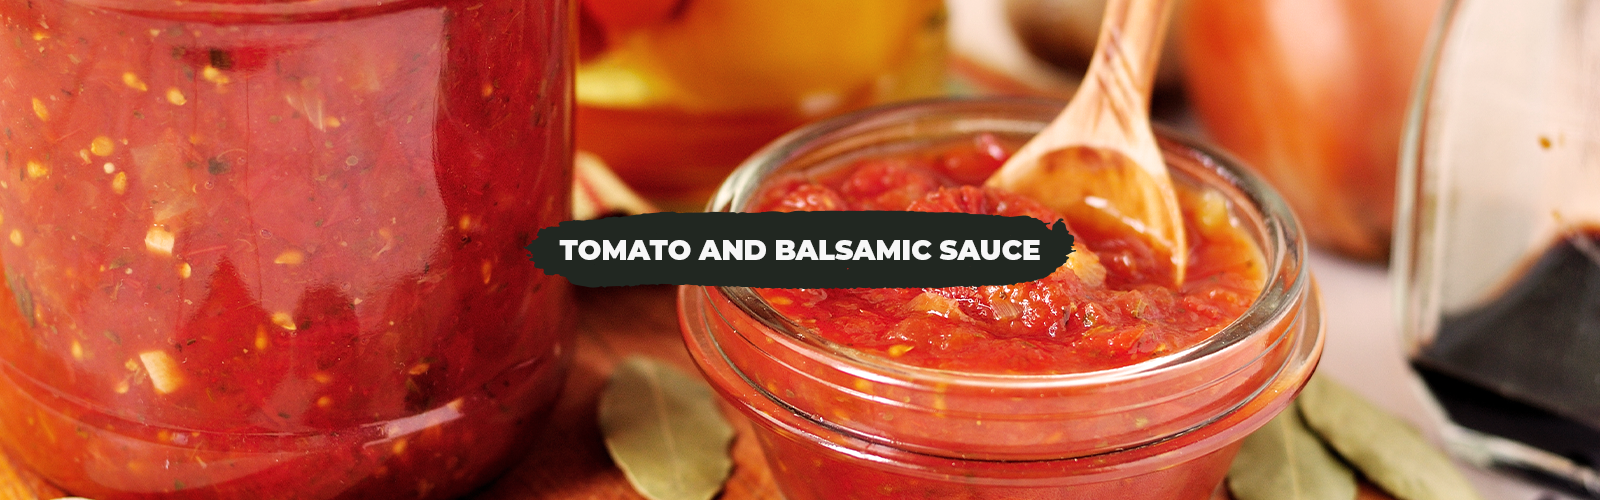 Thermo Diet Tomato and Balsamic Sauce